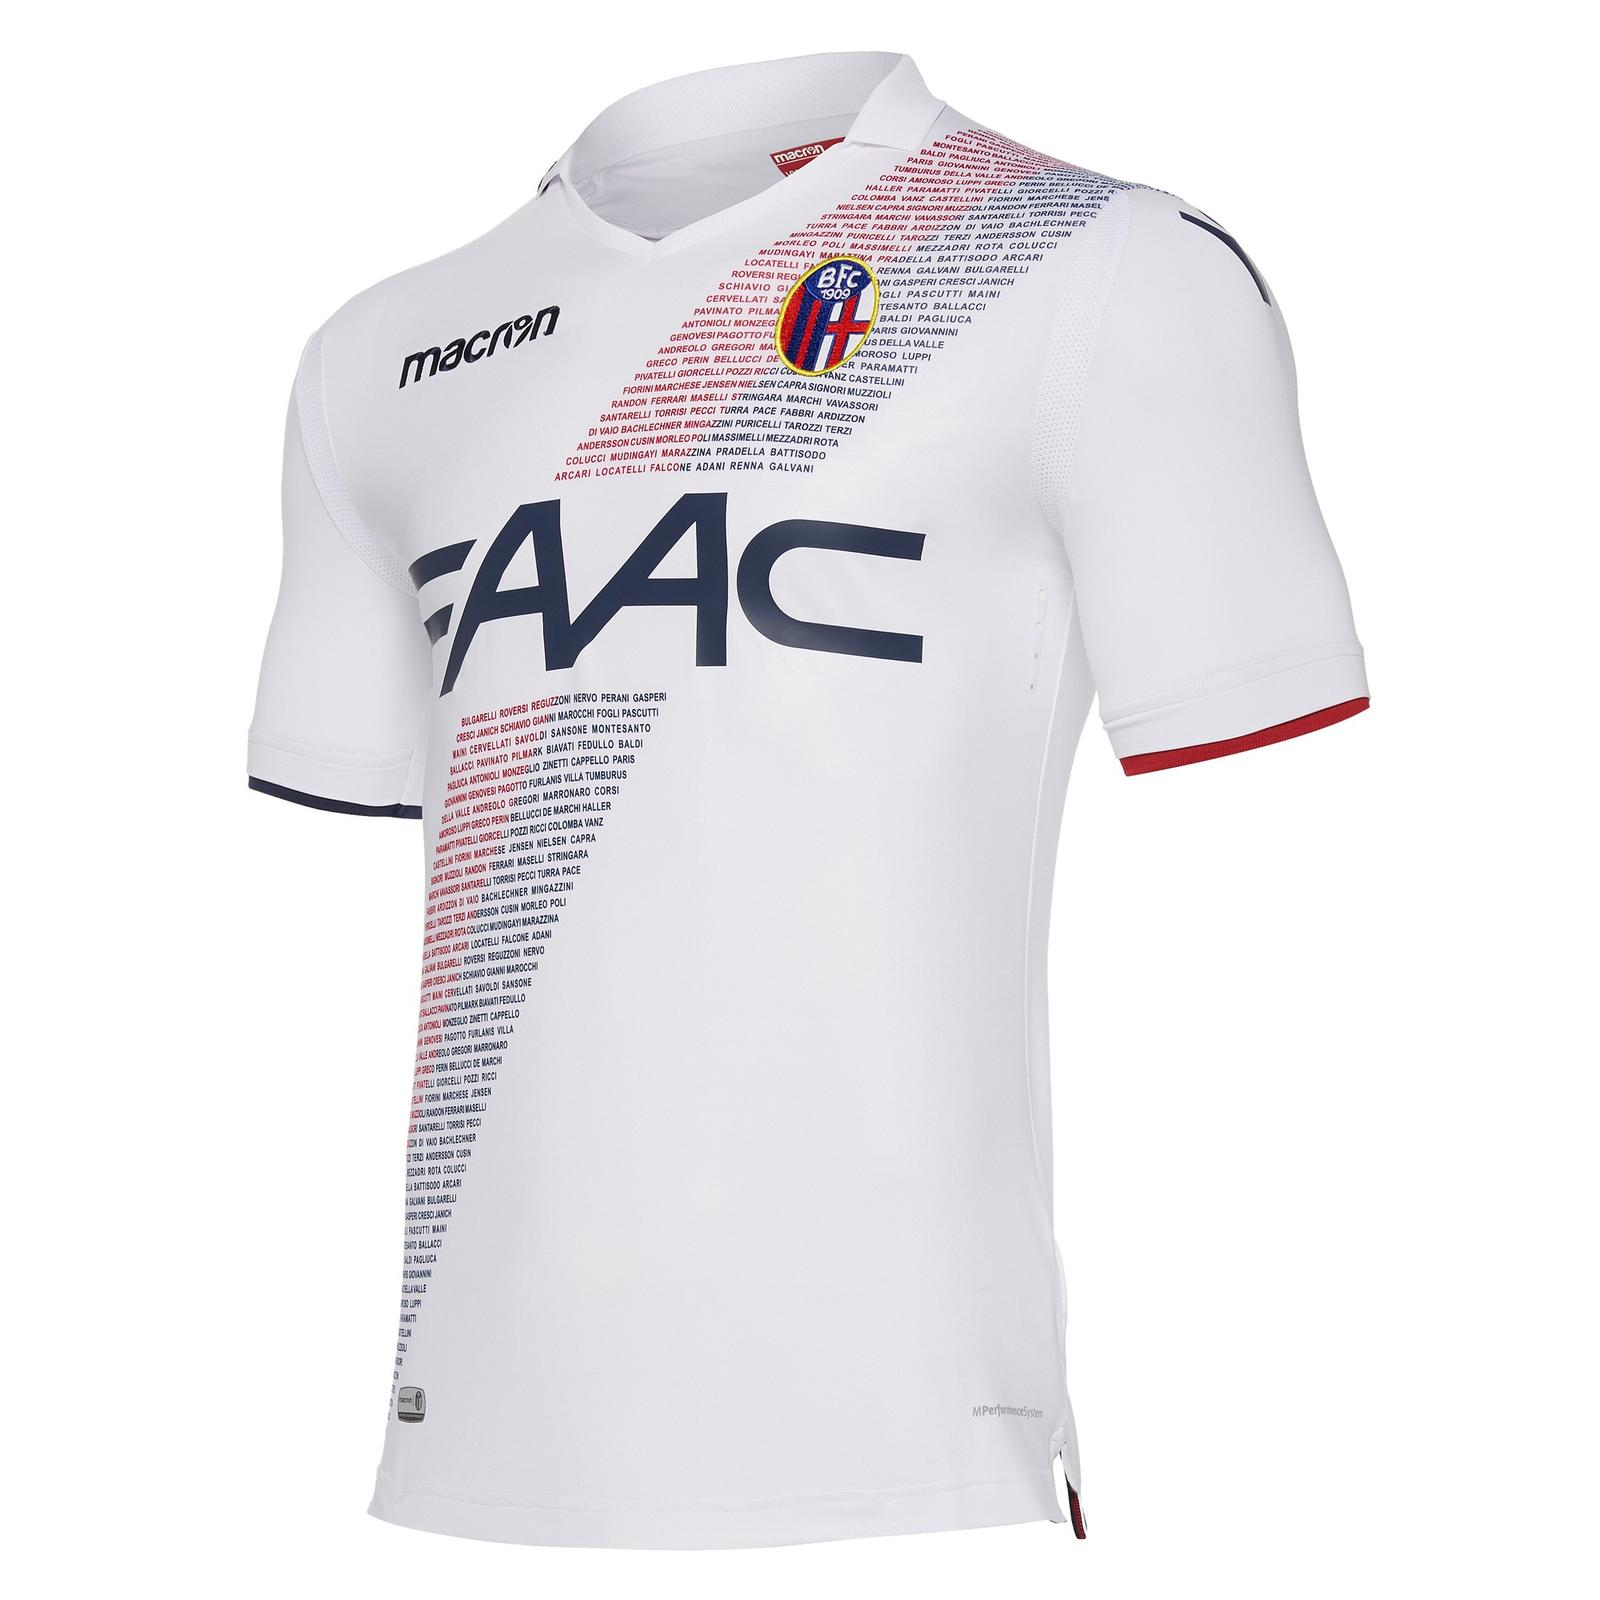 87c874f9ff1 This image shows the macron Bologna 2017-18 away shirt.